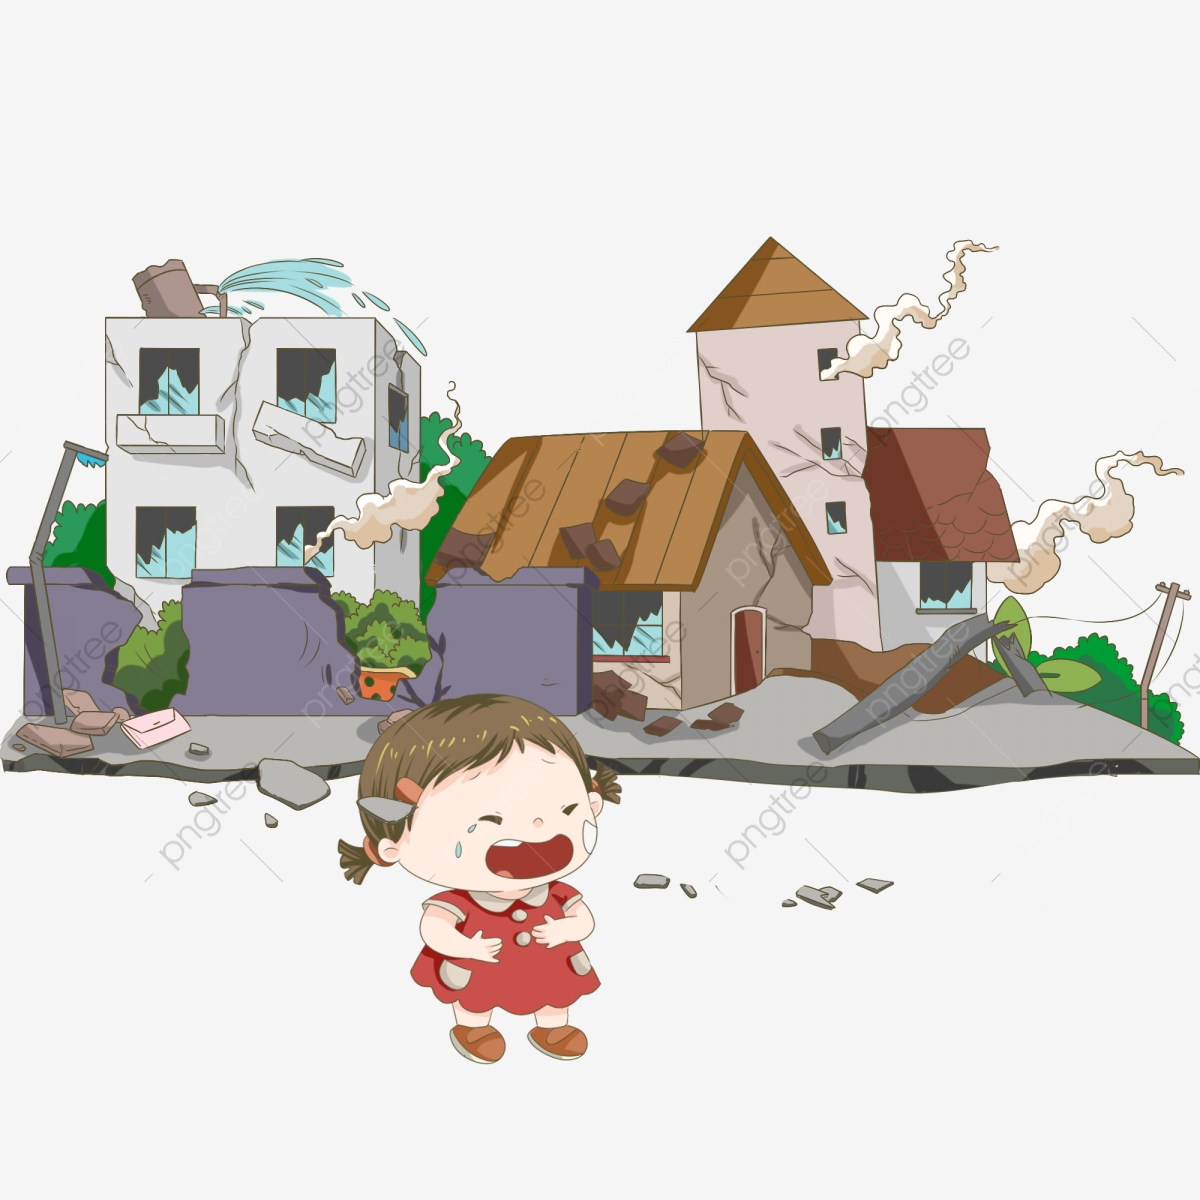 Earthquake clipart collapse. Disaster house hand painted